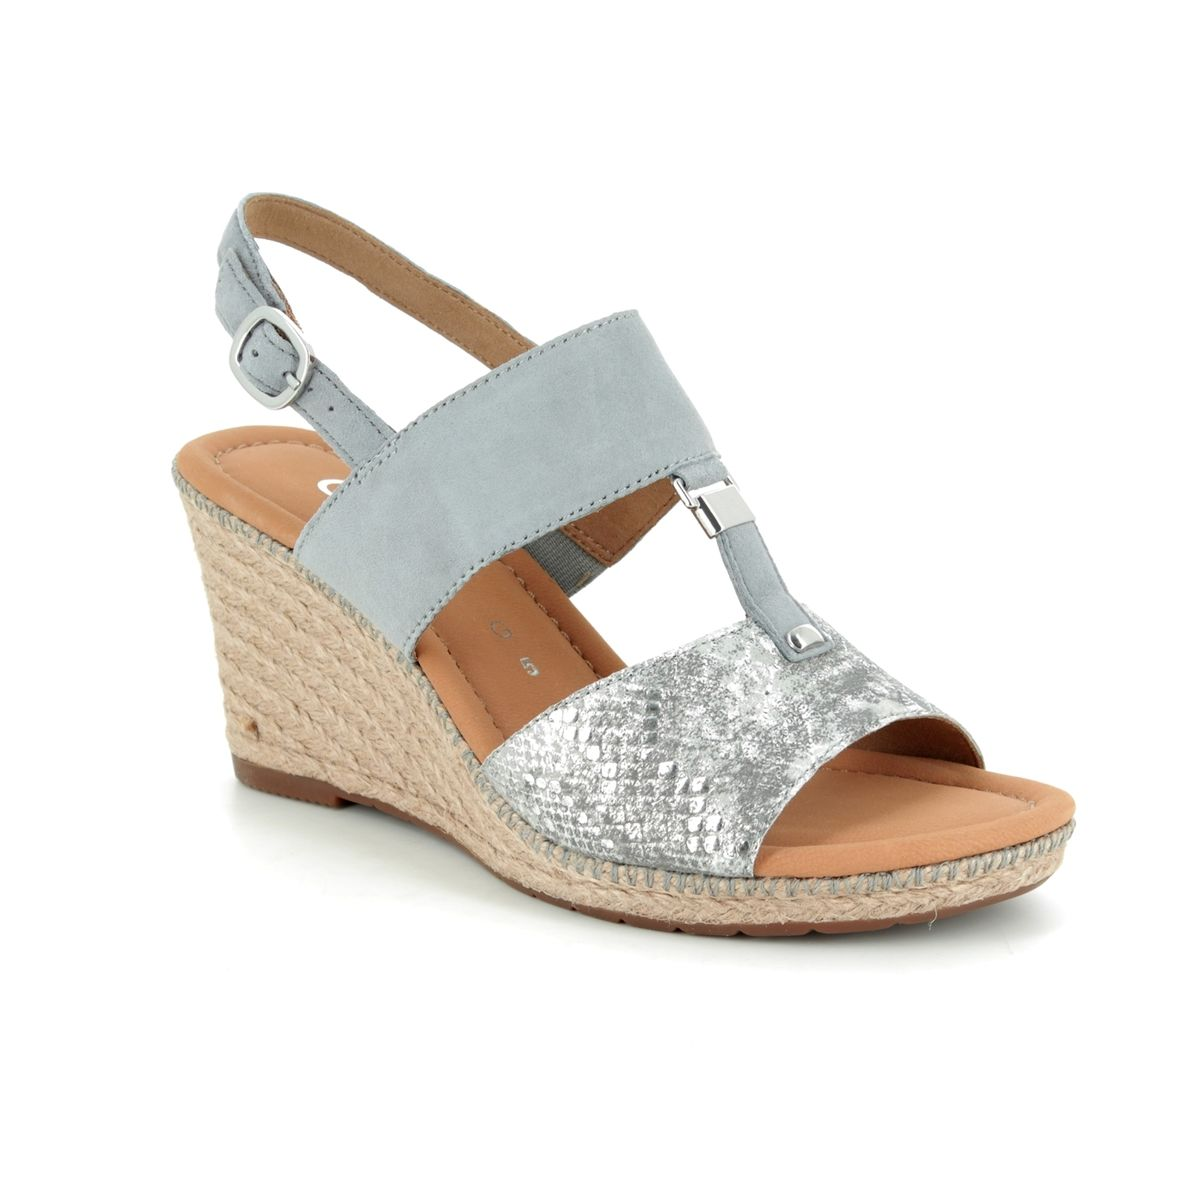 f197430b4c Gabor Wedge Sandals - Silver multi - 22.827.60 KEIRA